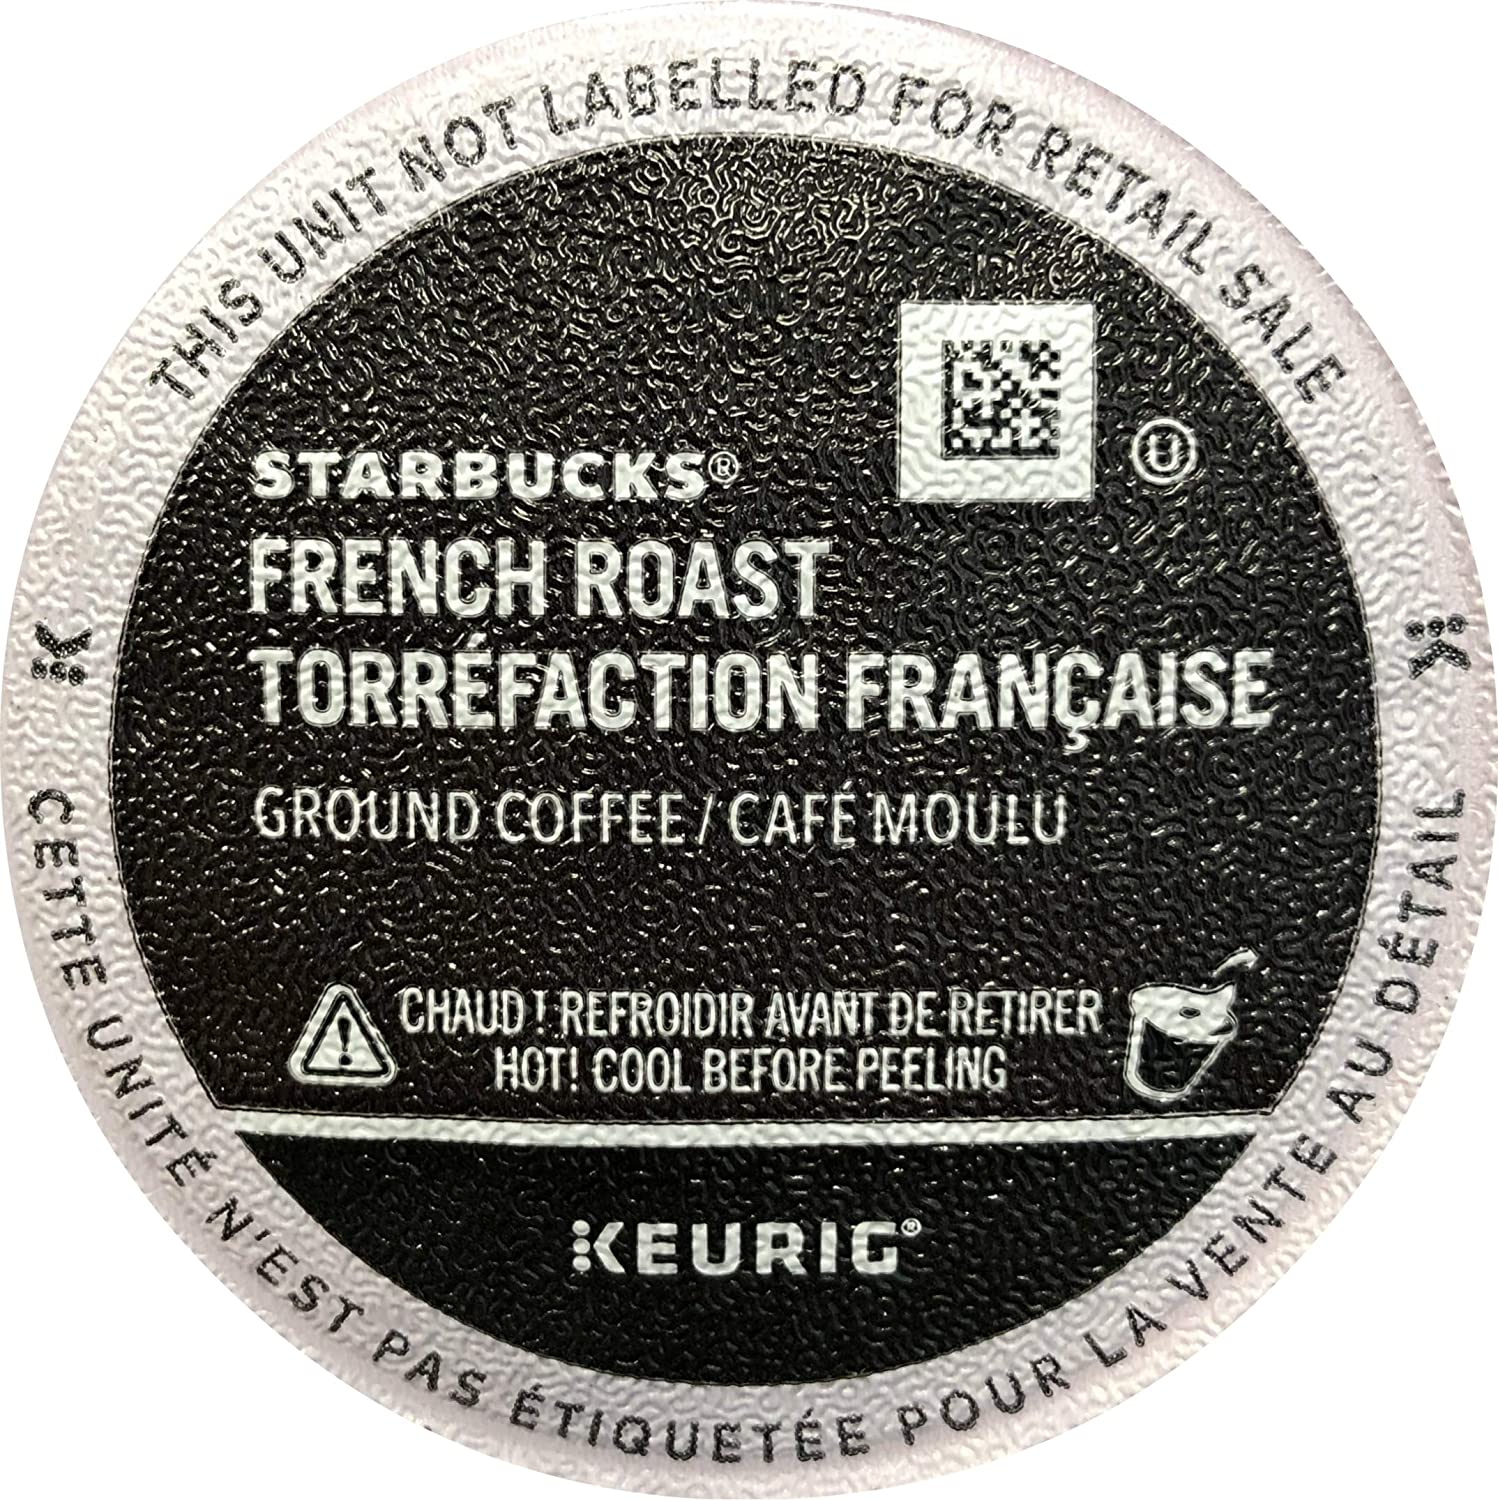 Starbucks French Roast Coffee K-Cup Portion Packs for Keurig Brewers, 72 Count (3 boxes of 24 K-Cups) - Packaging May Vary